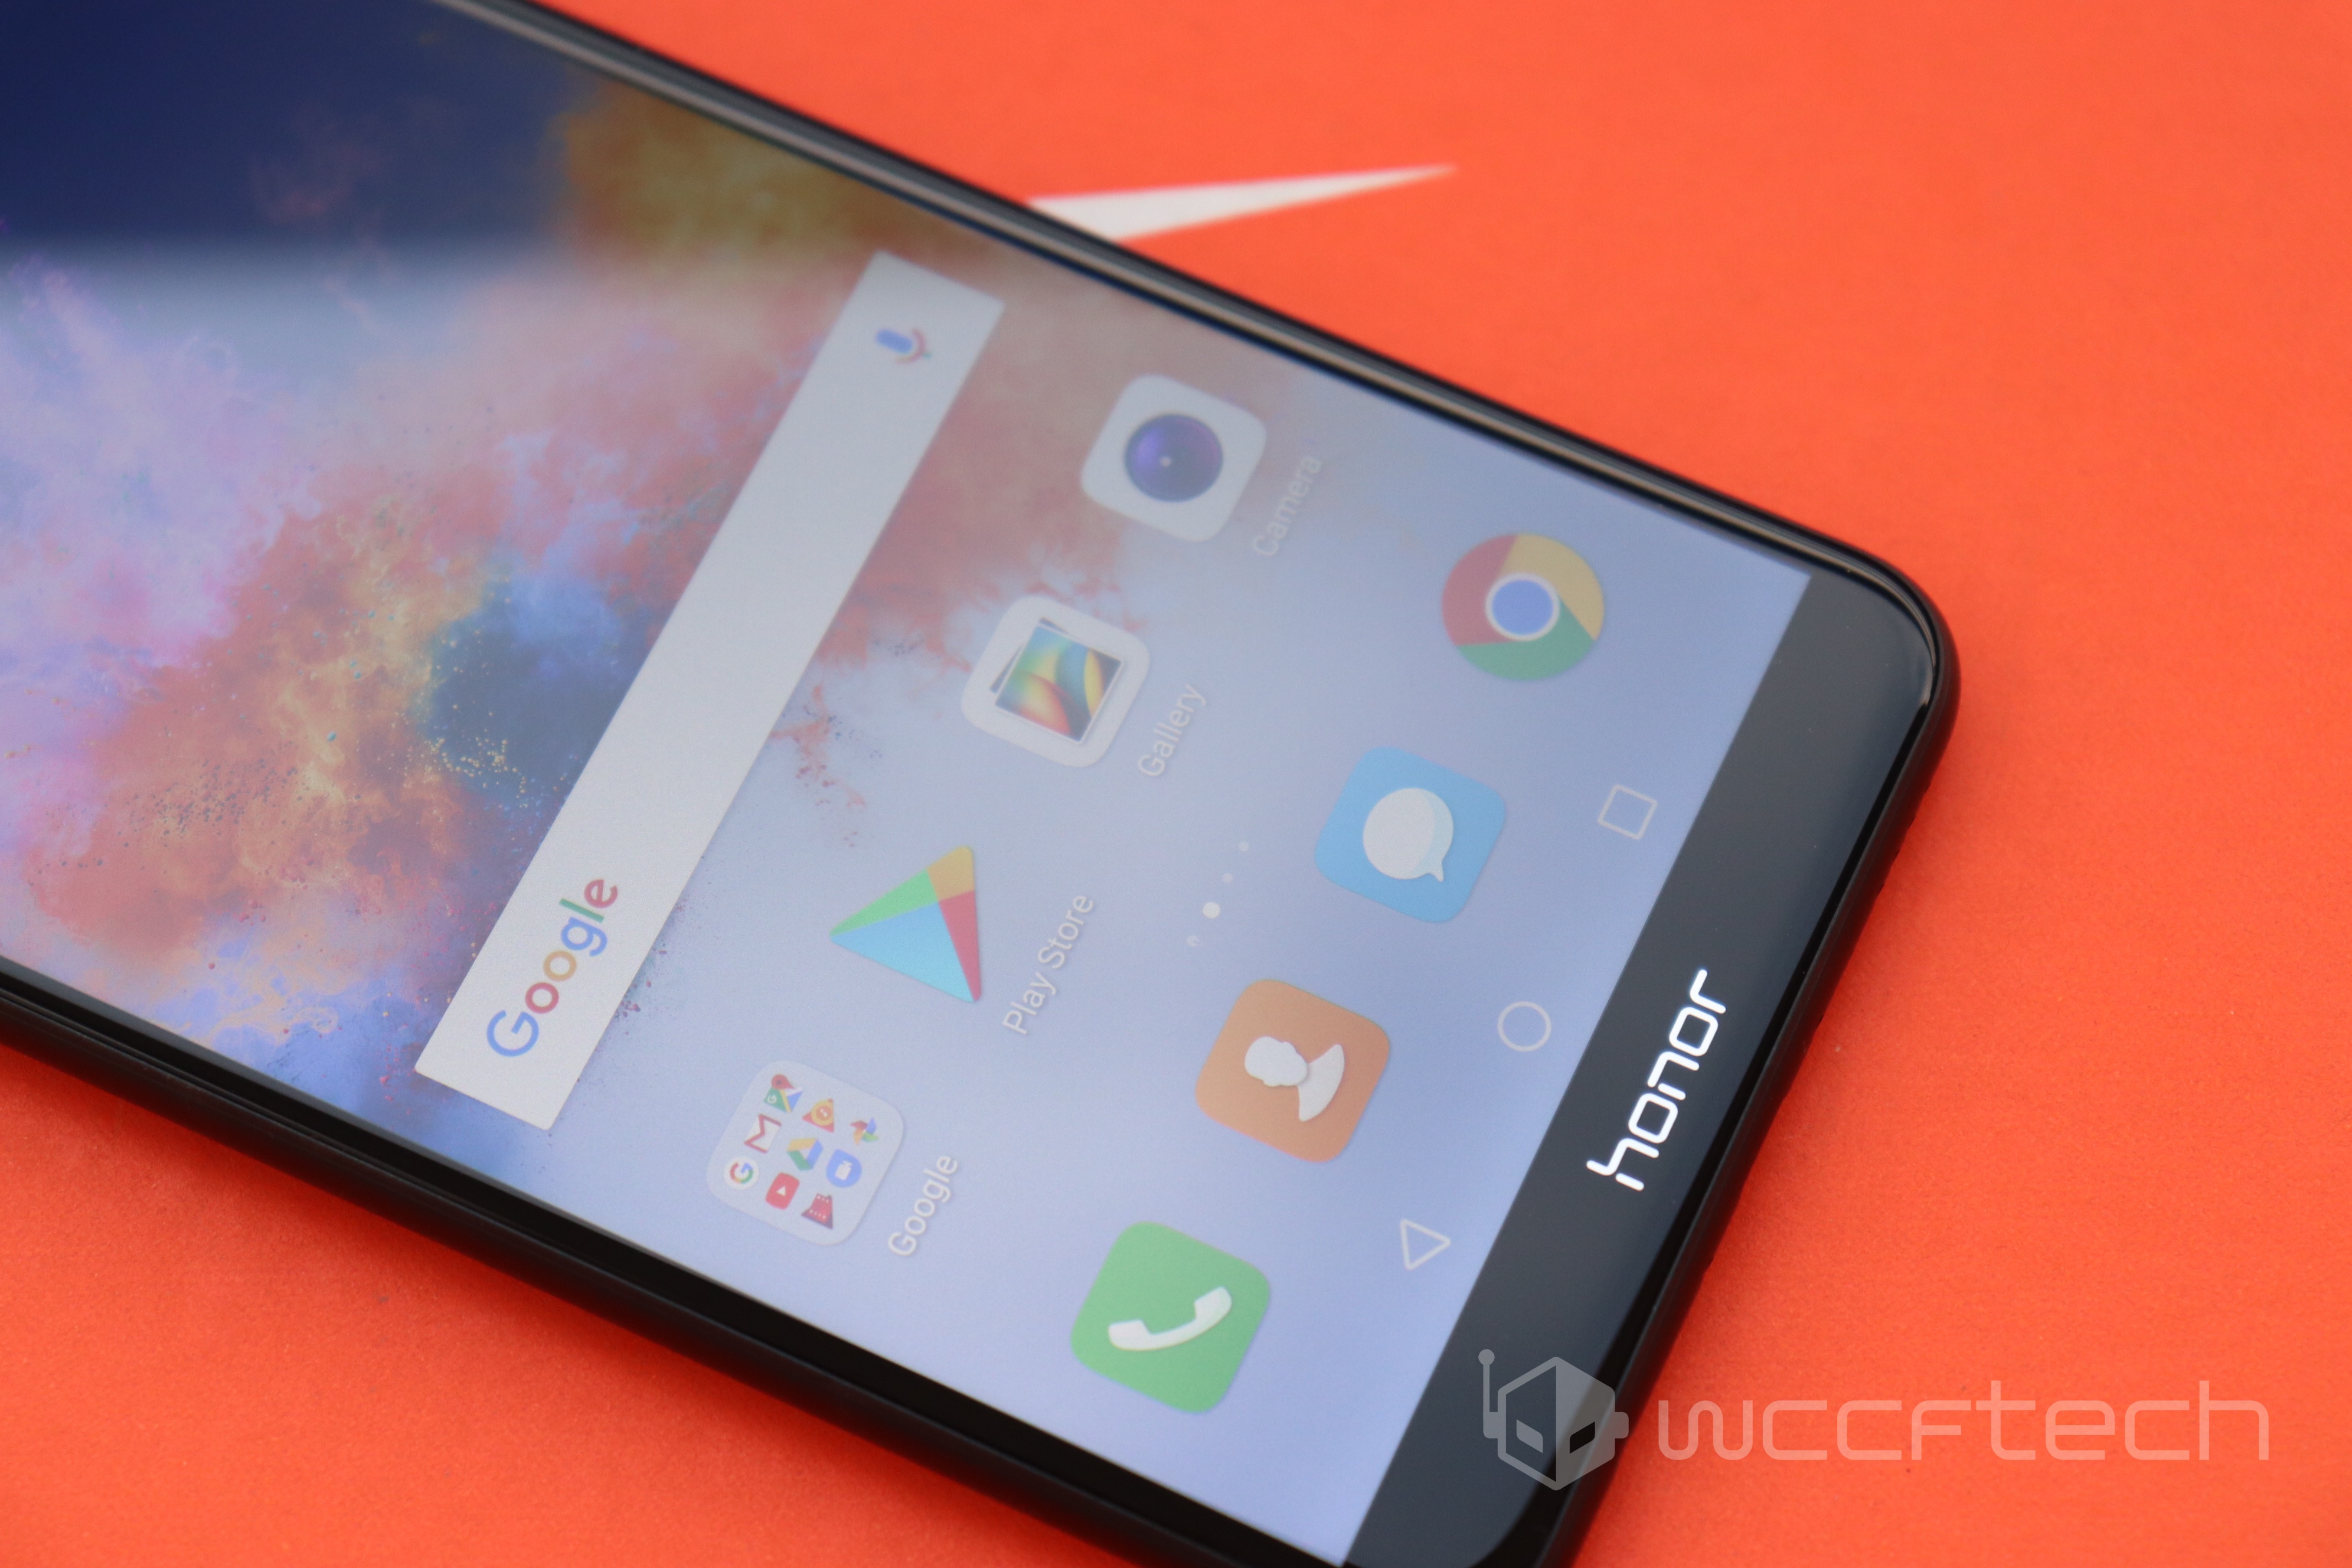 Honor 7X Hands-On: Almost Bezel-less Premium Phone At Budget